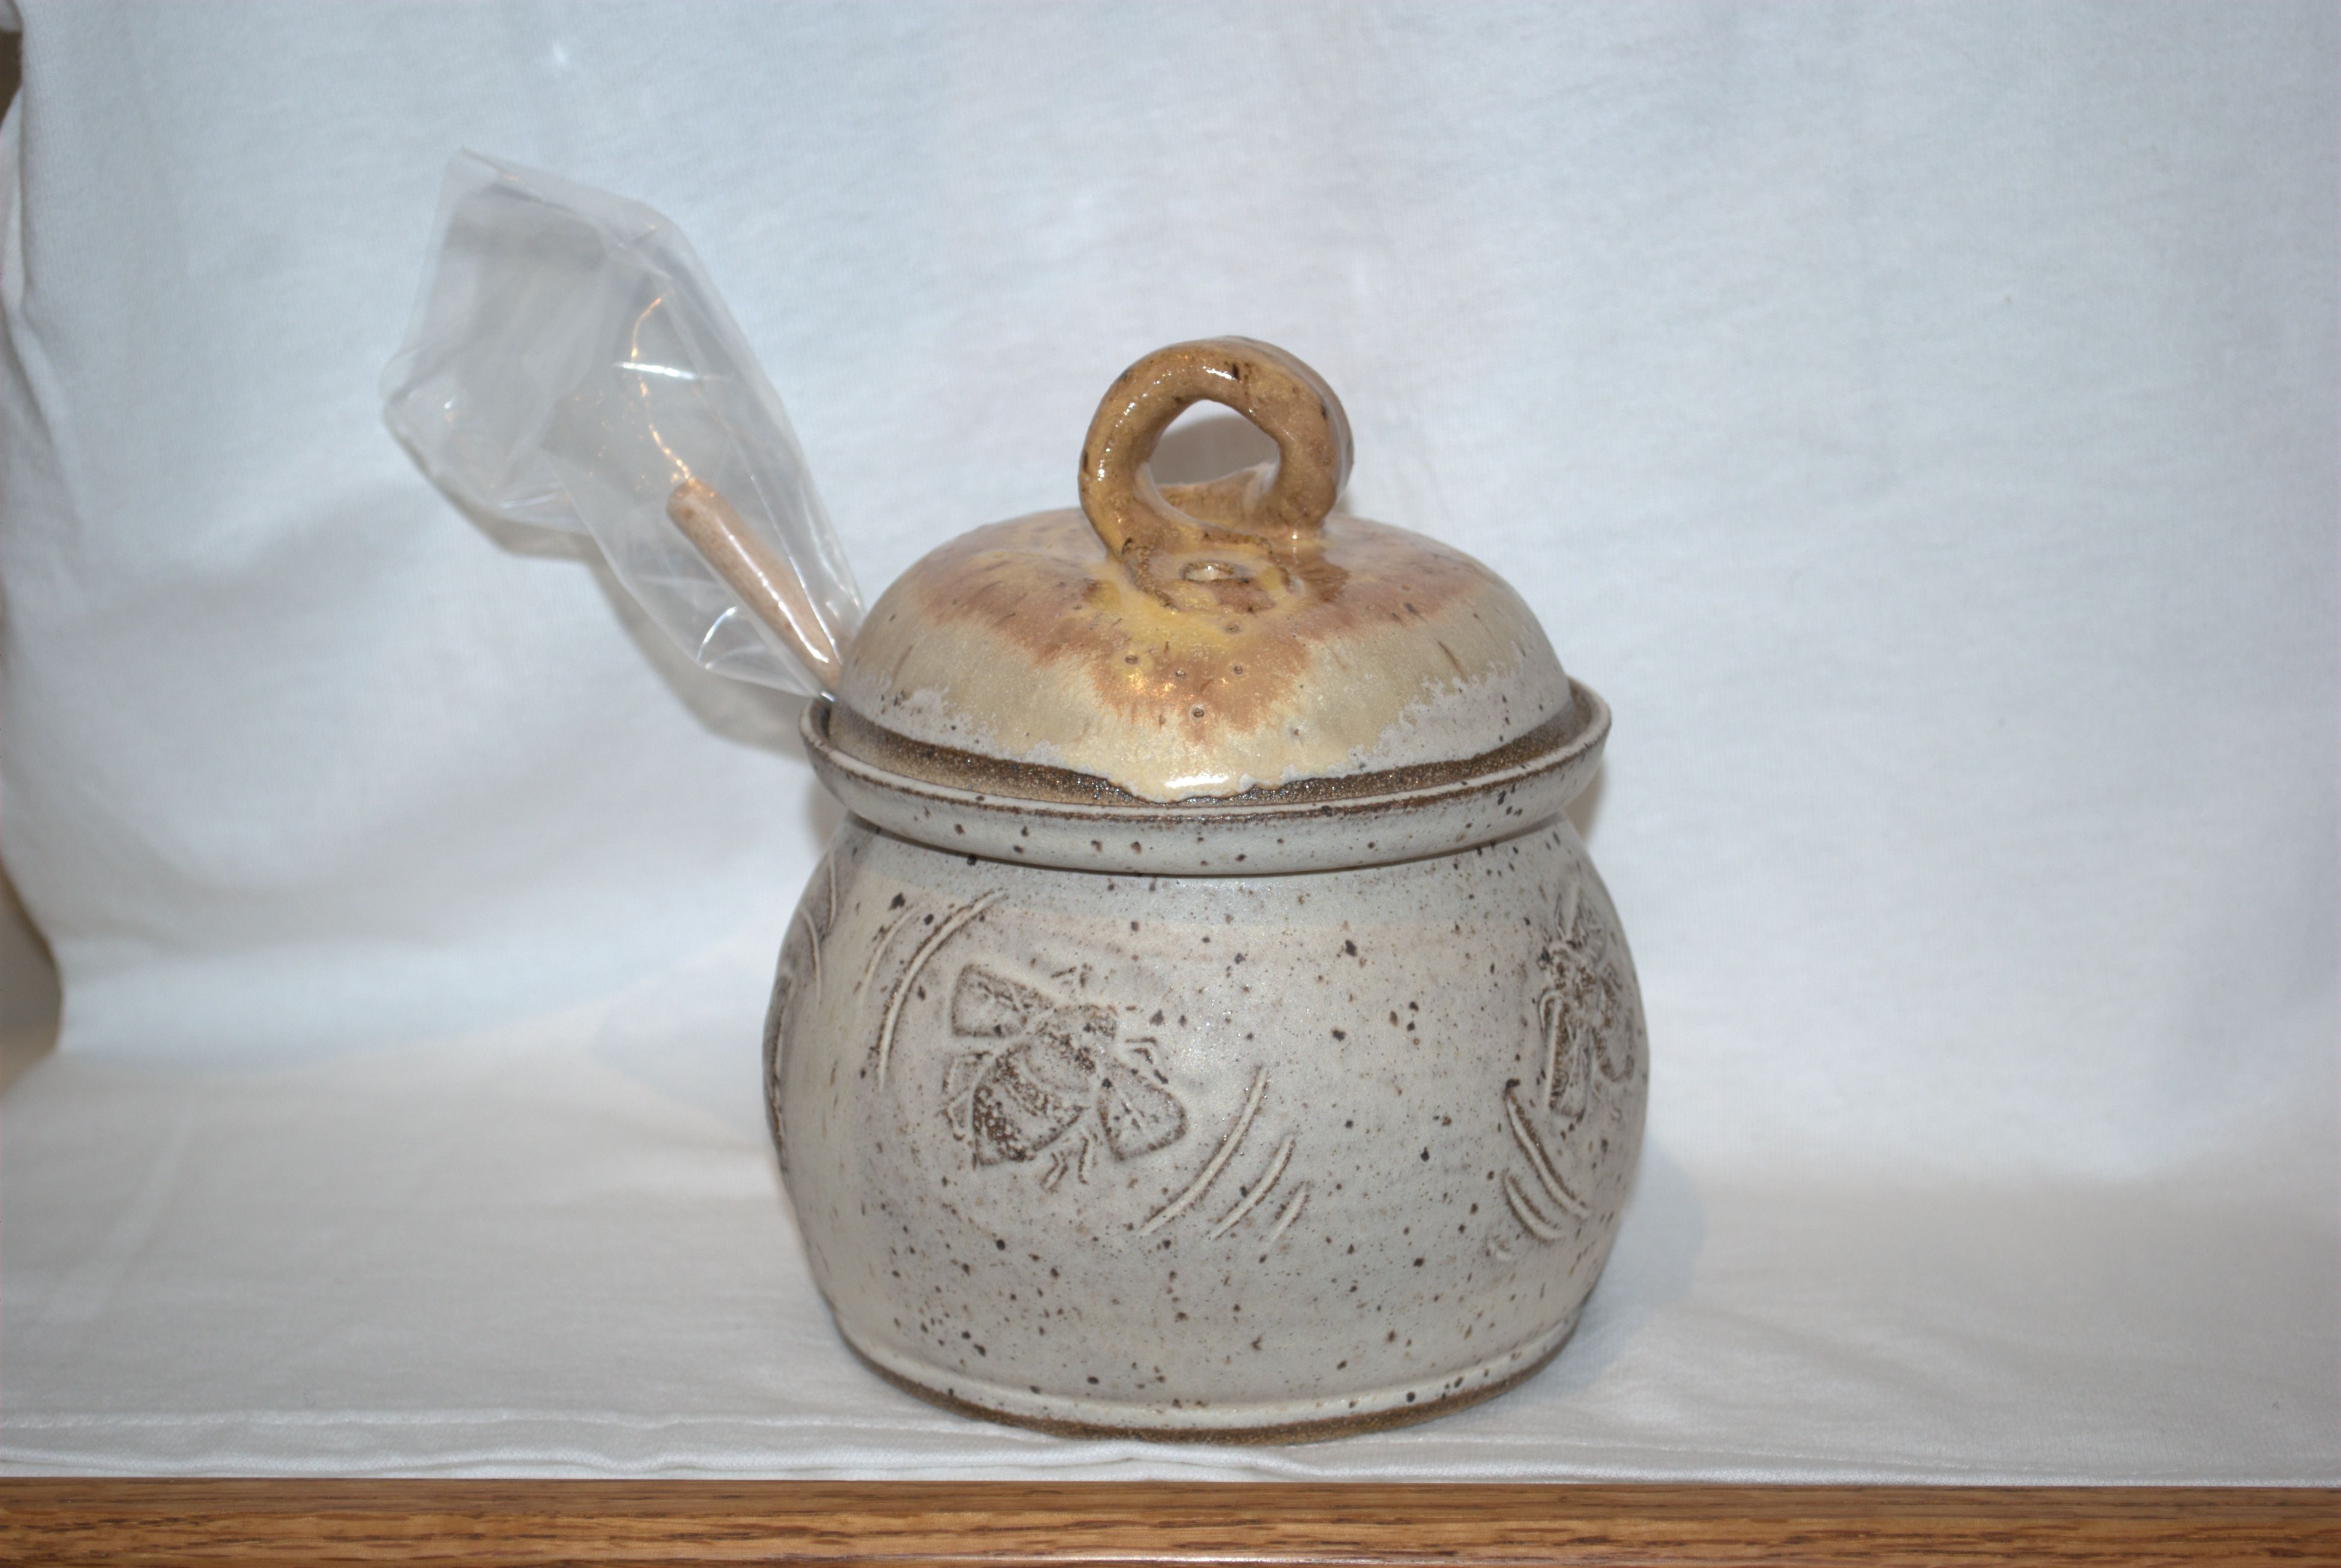 Honeypot from Pottery by Friesen Art.